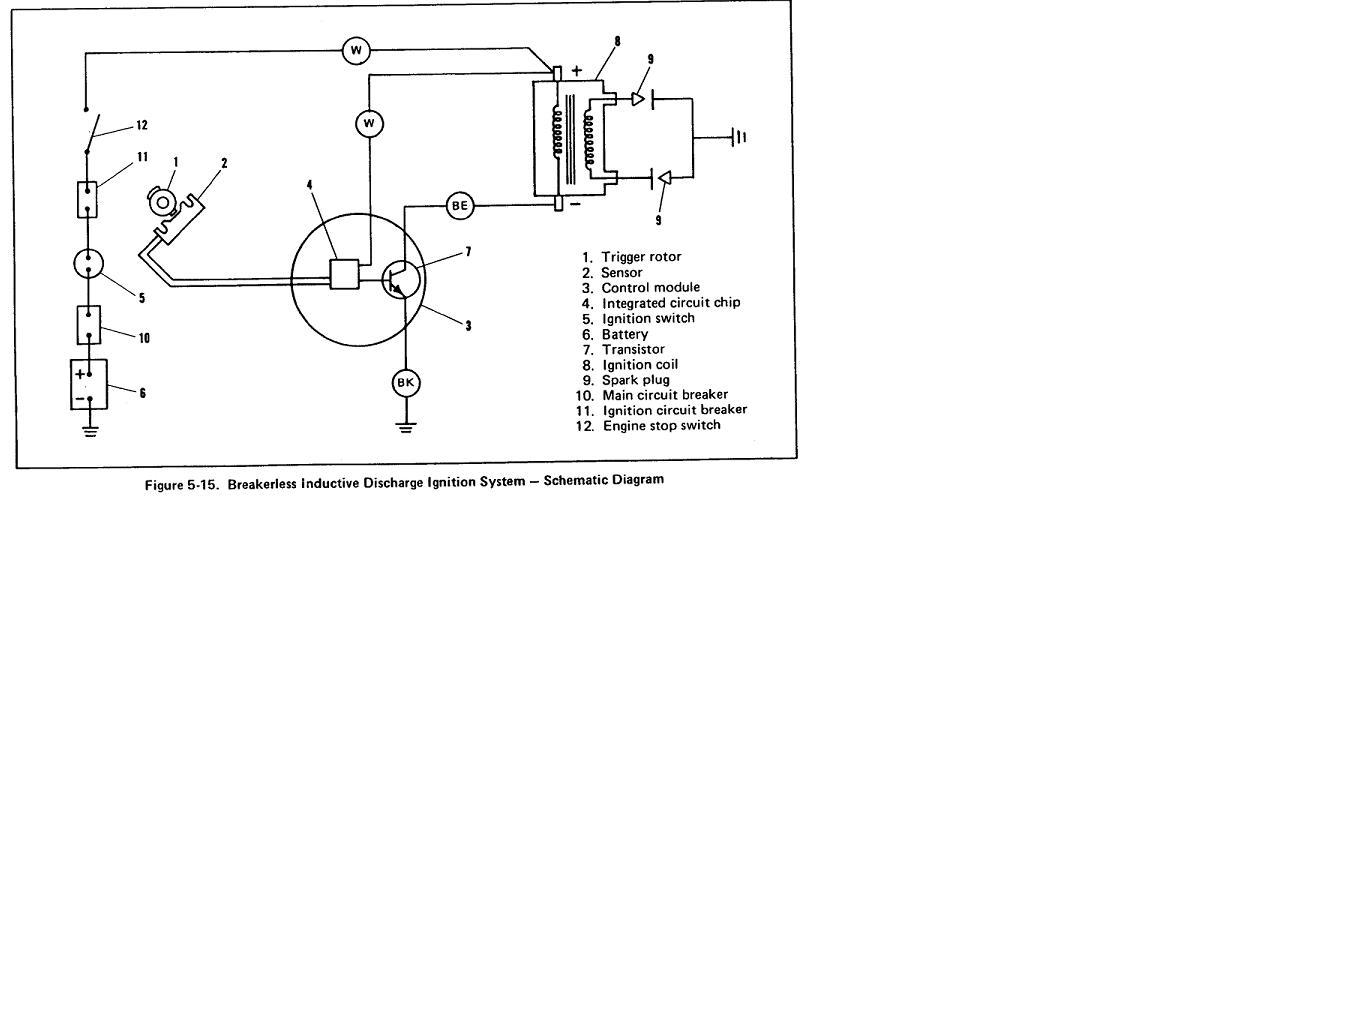 79 shovelhead wiring diagram 2001 ford taurus ses stereo coil ground wire harley davidson forums